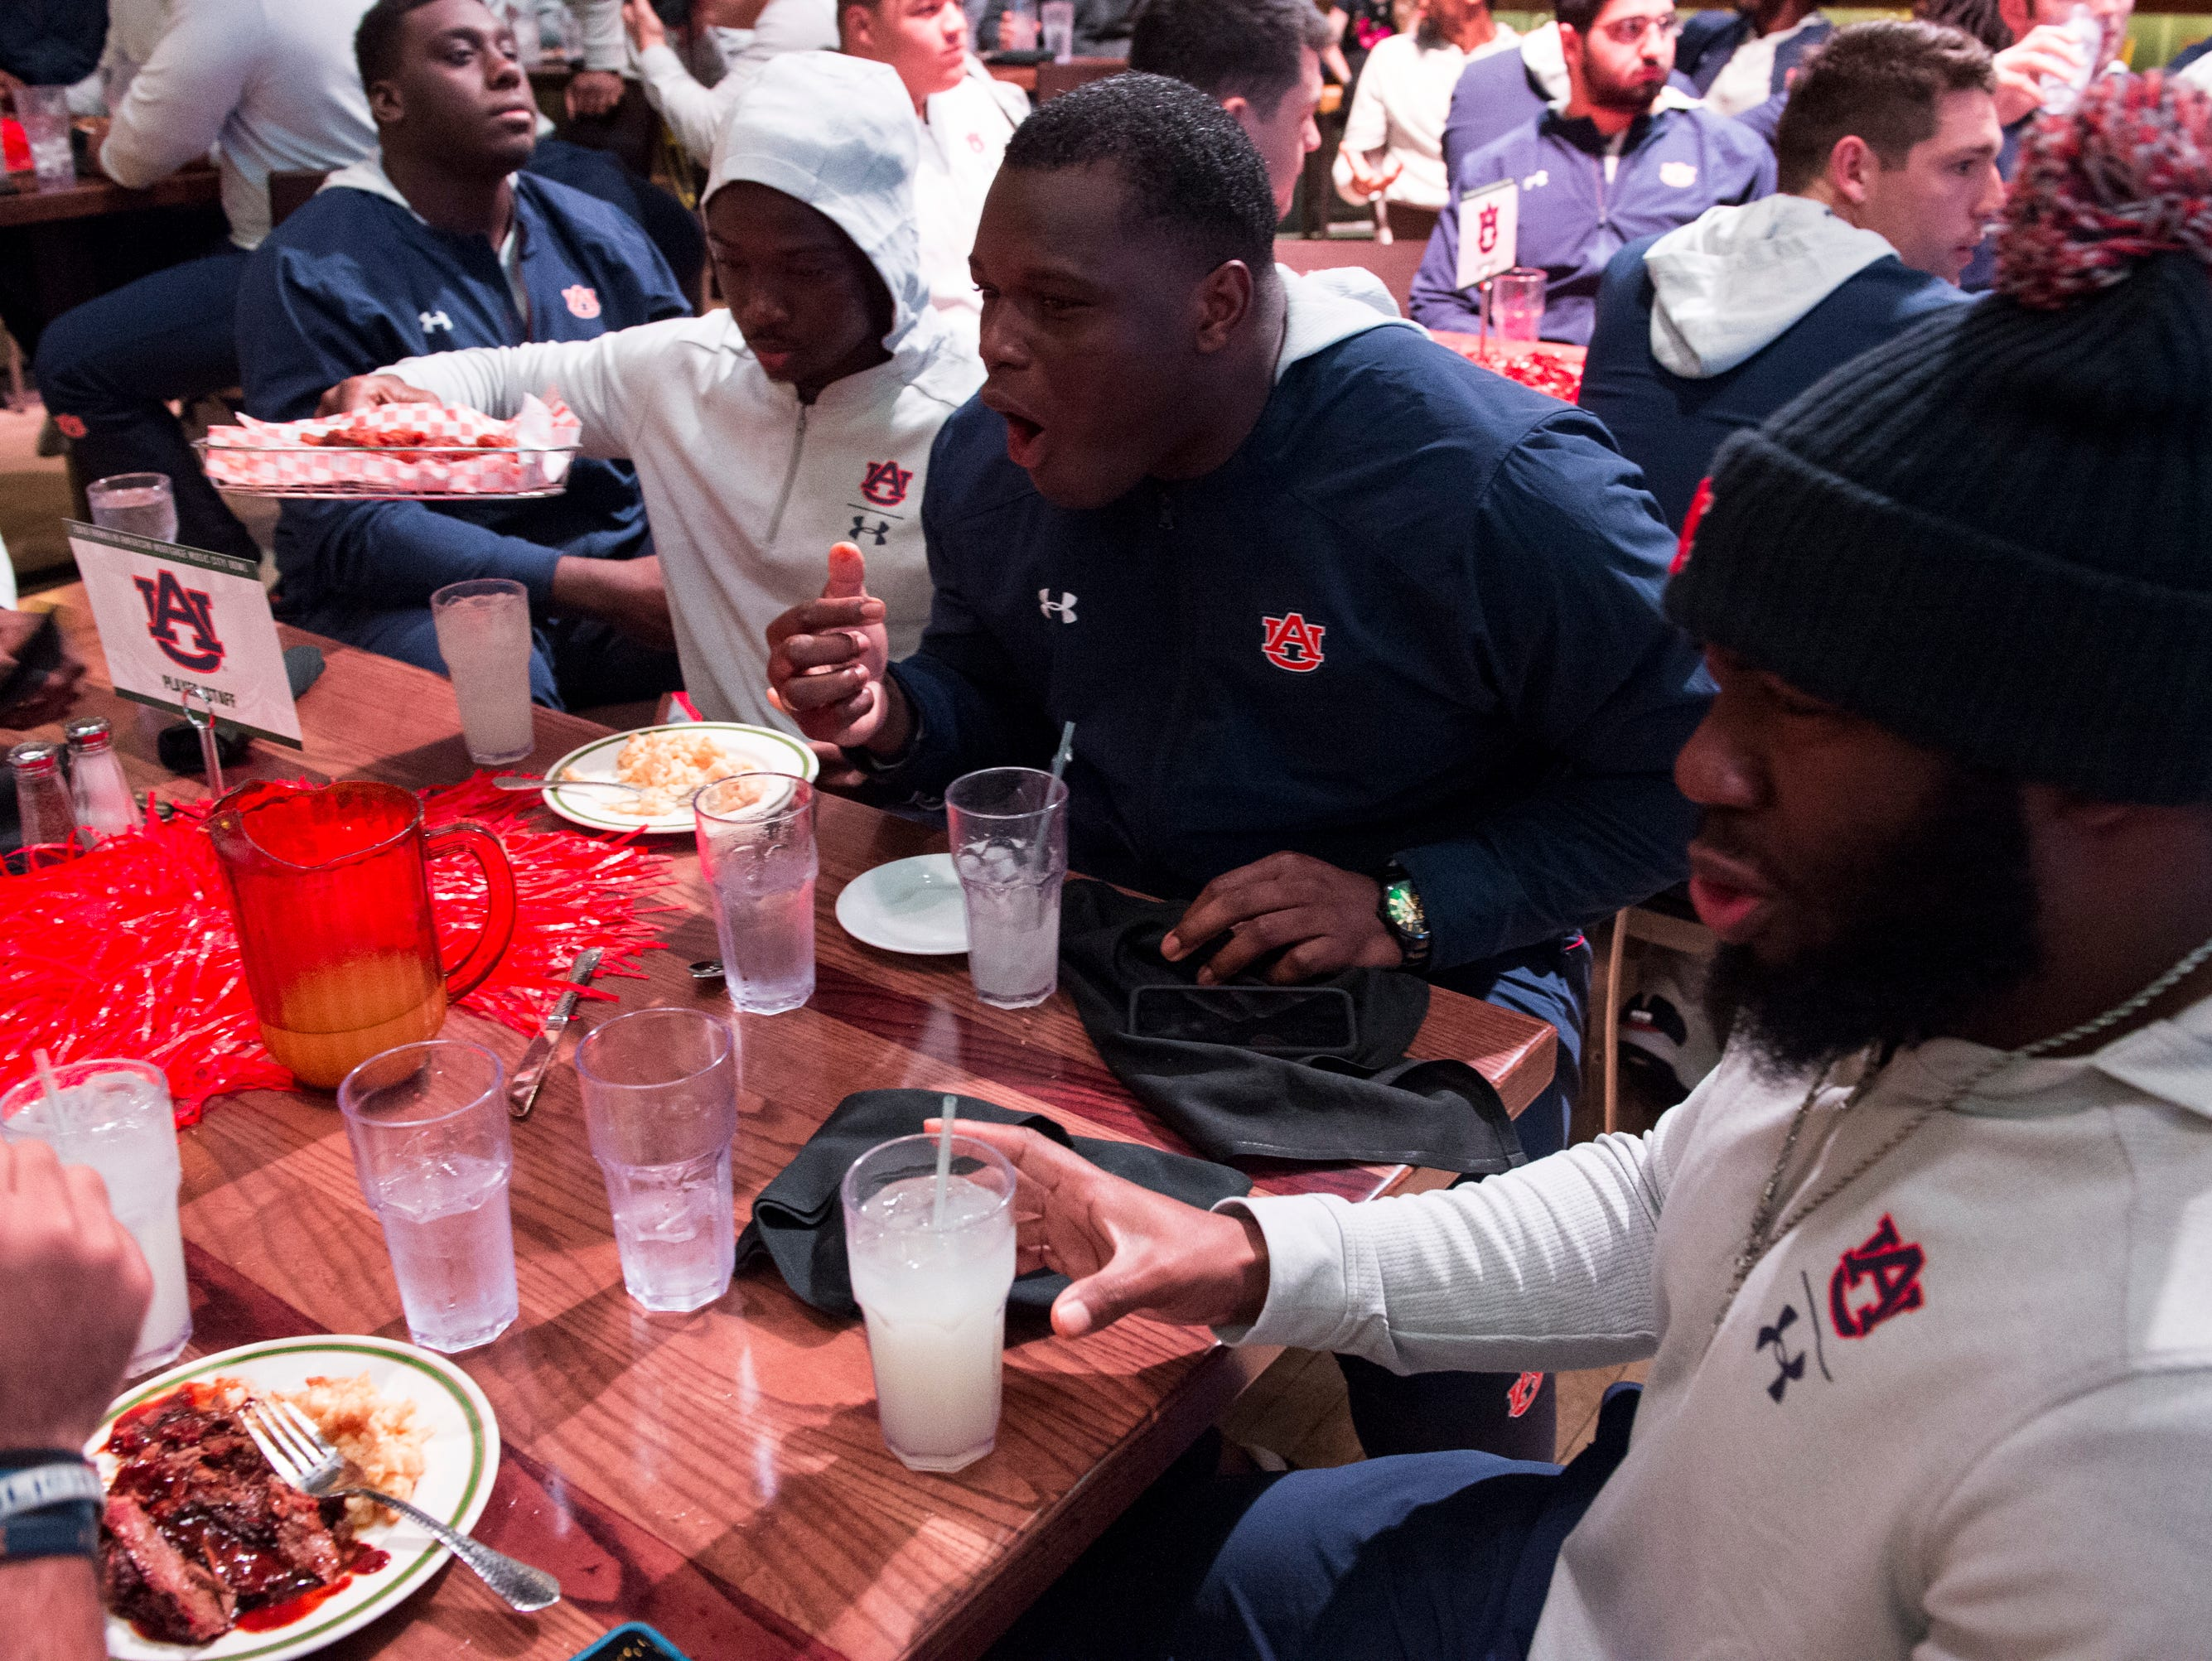 Auburn players react after eating Nashville Hot Chicken at Wild Horse Saloon in Nashville, Ten., on Wednesday, Dec. 26, 2018. Auburn takes on Purdue in the Music City Bowl Friday.